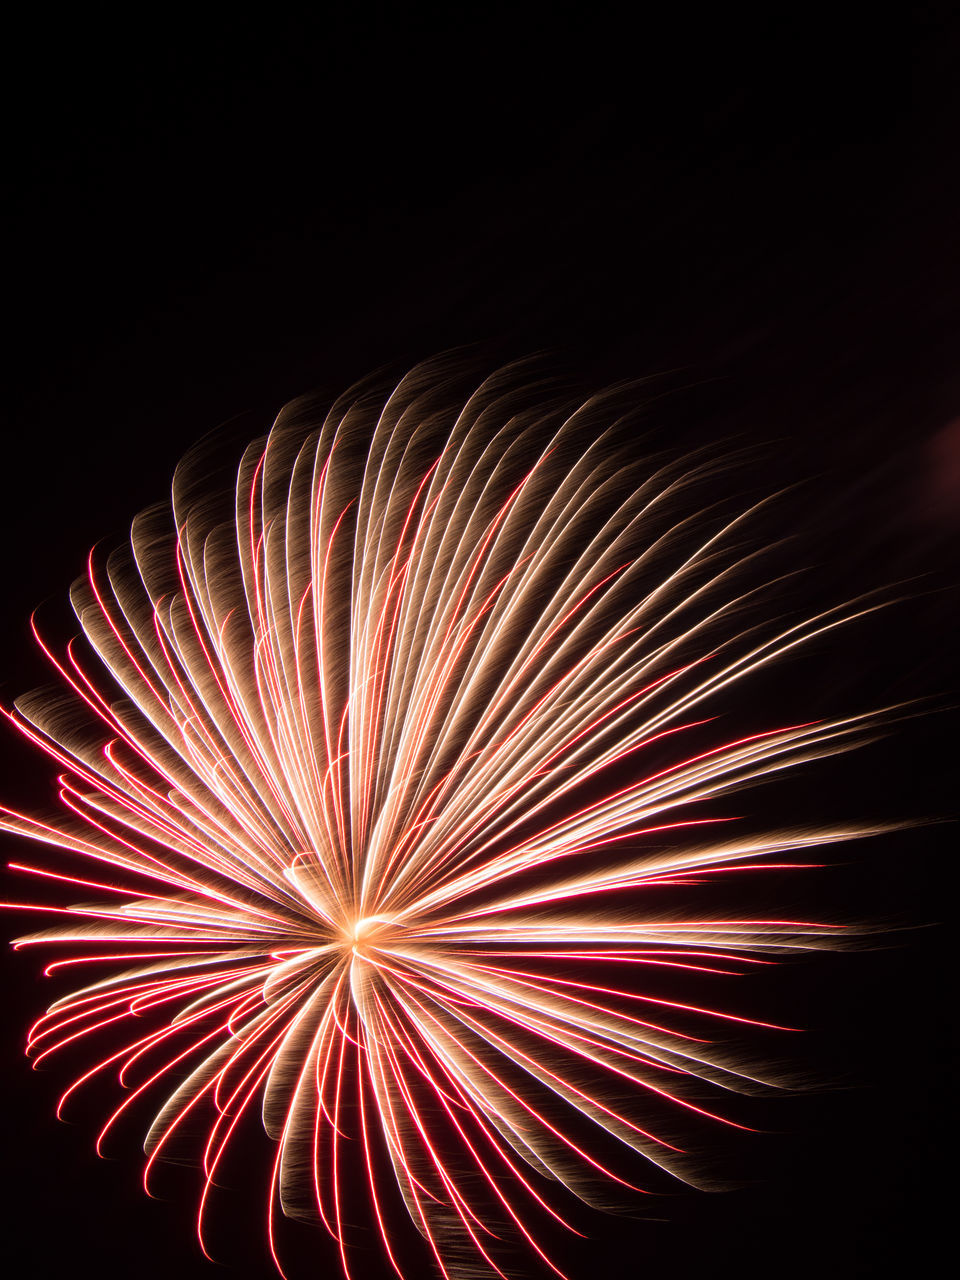 exploding, firework display, firework - man made object, arts culture and entertainment, night, long exposure, blurred motion, black background, celebration, event, motion, sky, illuminated, no people, low angle view, firework, multi colored, outdoors